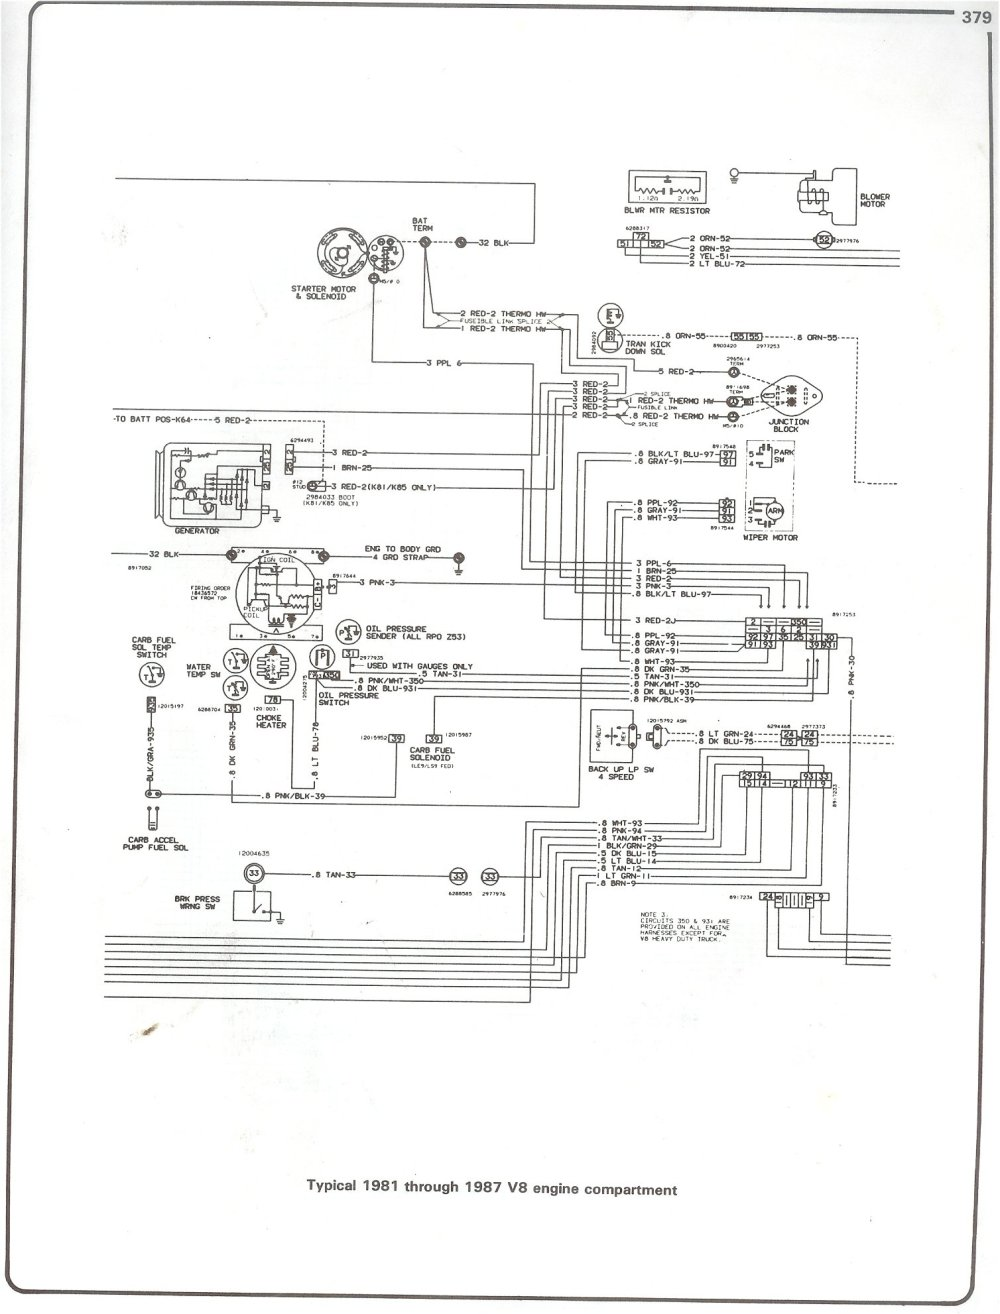 medium resolution of 1989 dodge ram van wiring diagram